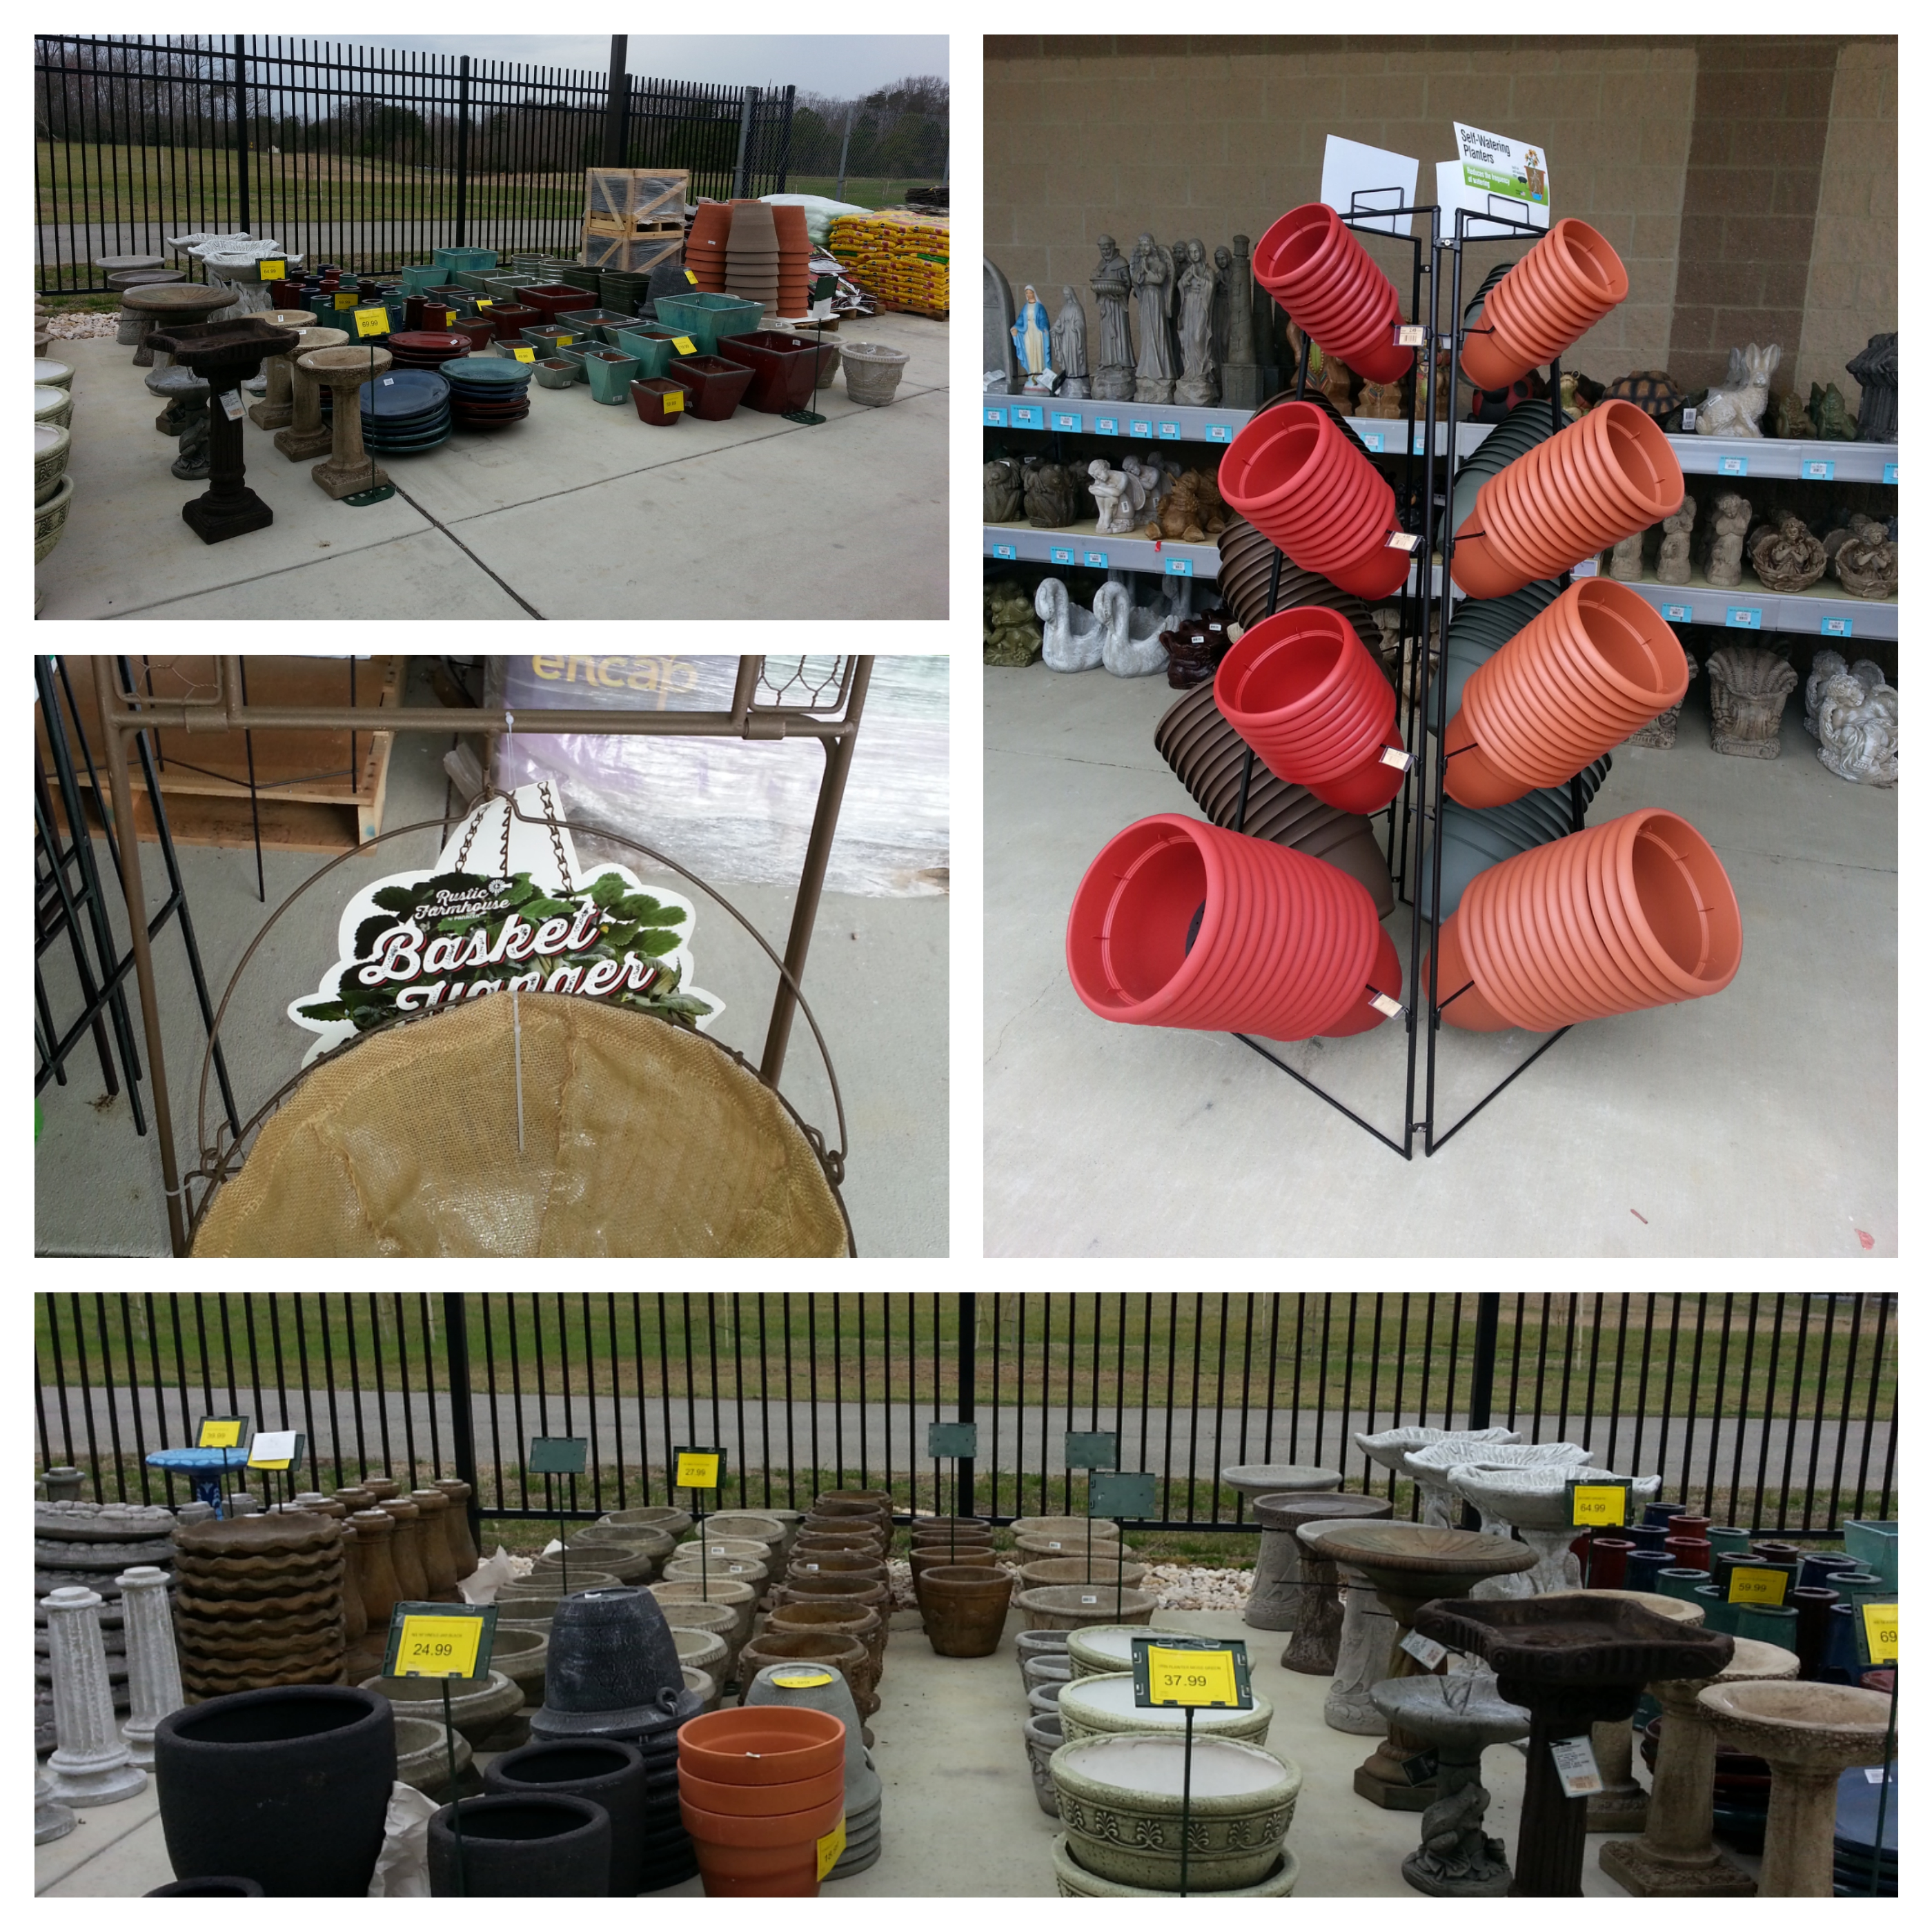 Sneades Garden Center at Lusby Maryland Has What You Need